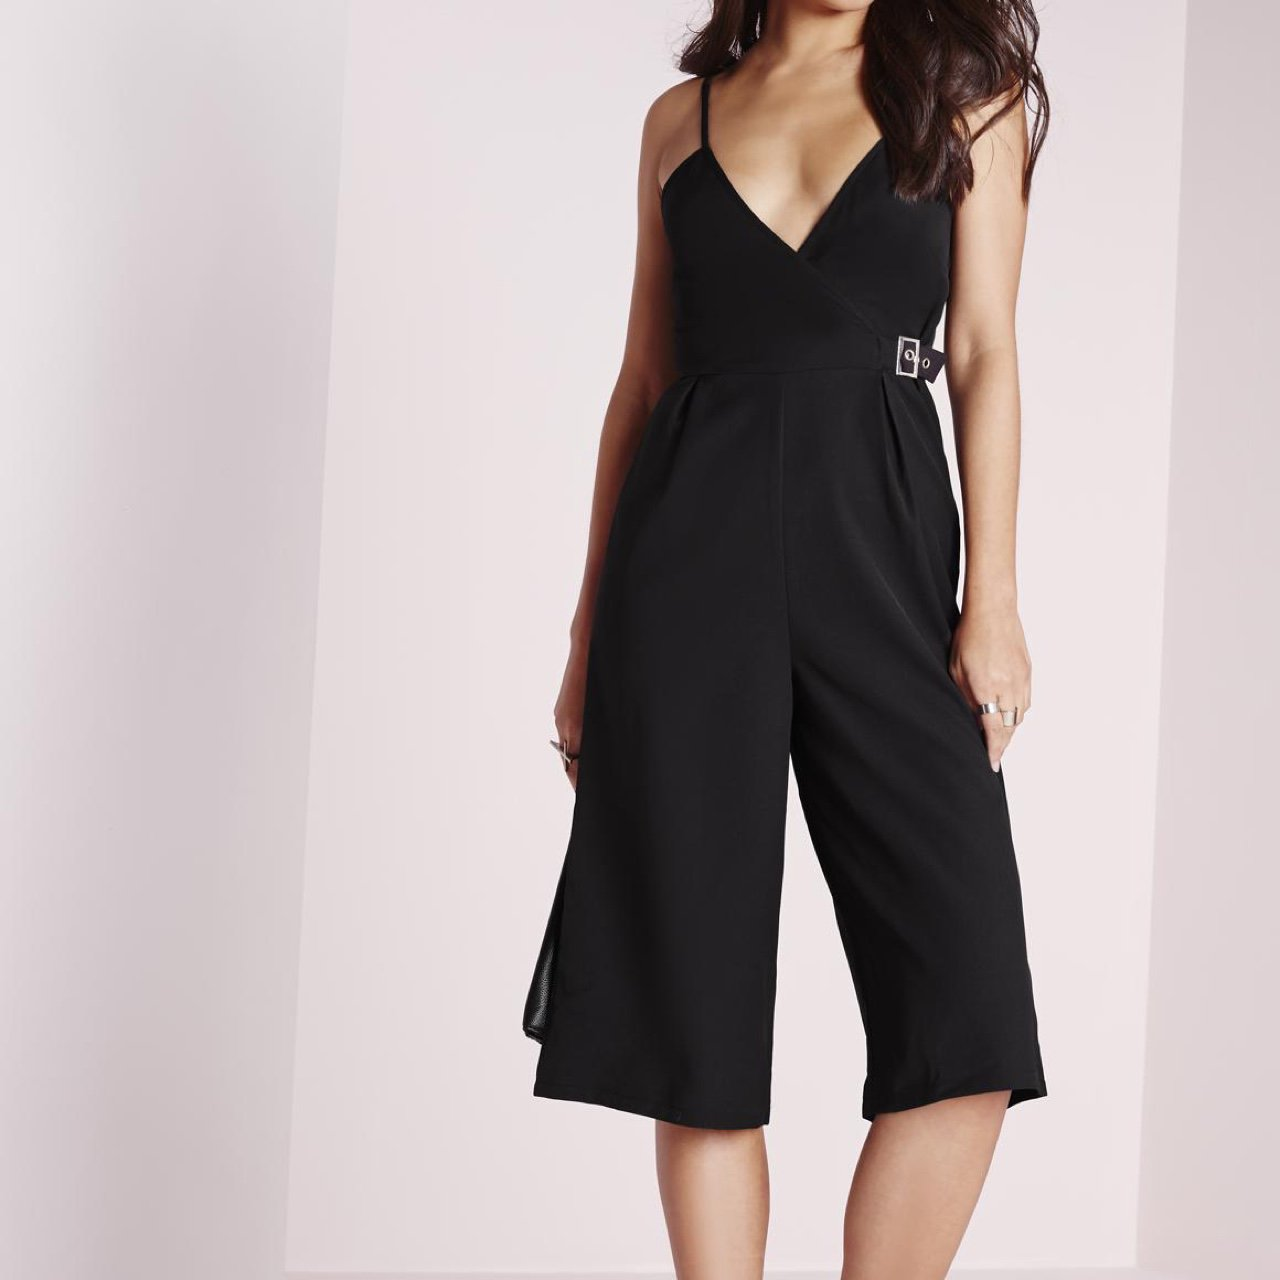 8aff6cd15564 MISSGUIDED Size 10 black strappy culotte jumpsuit with Never - Depop